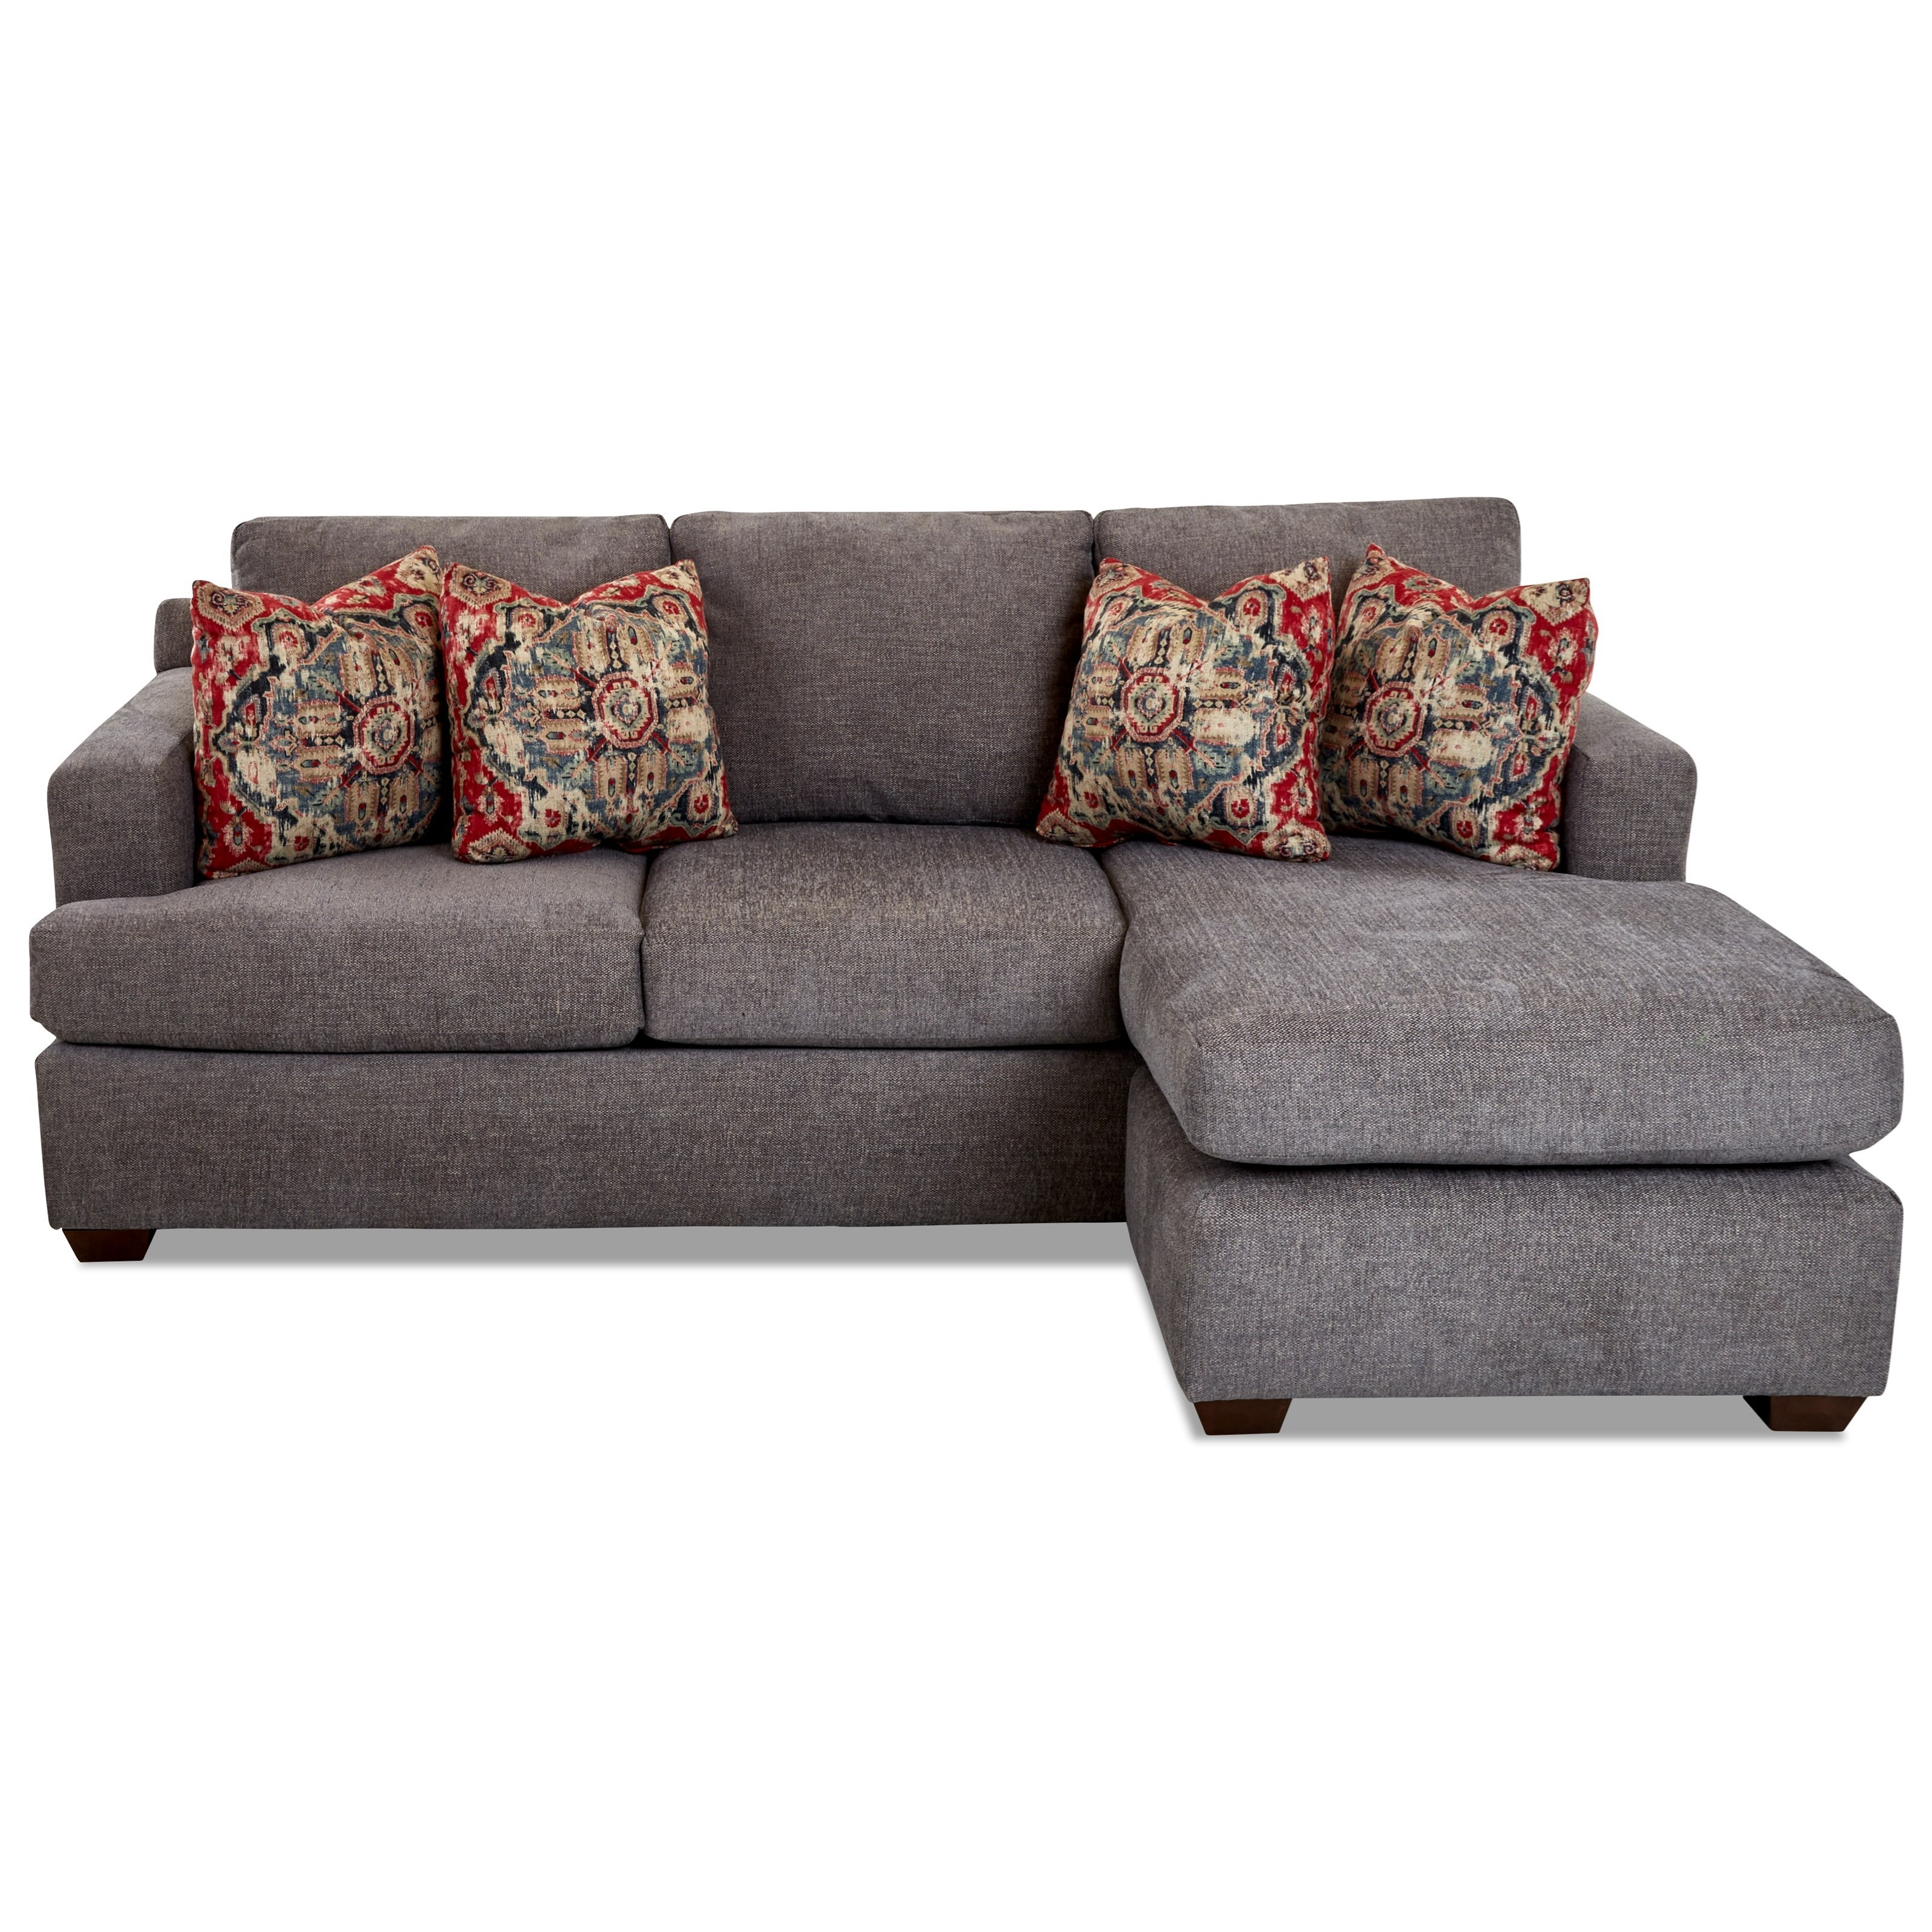 Juniper 2-Piece Sofa Chaise Sectional by Klaussner at Johnny Janosik